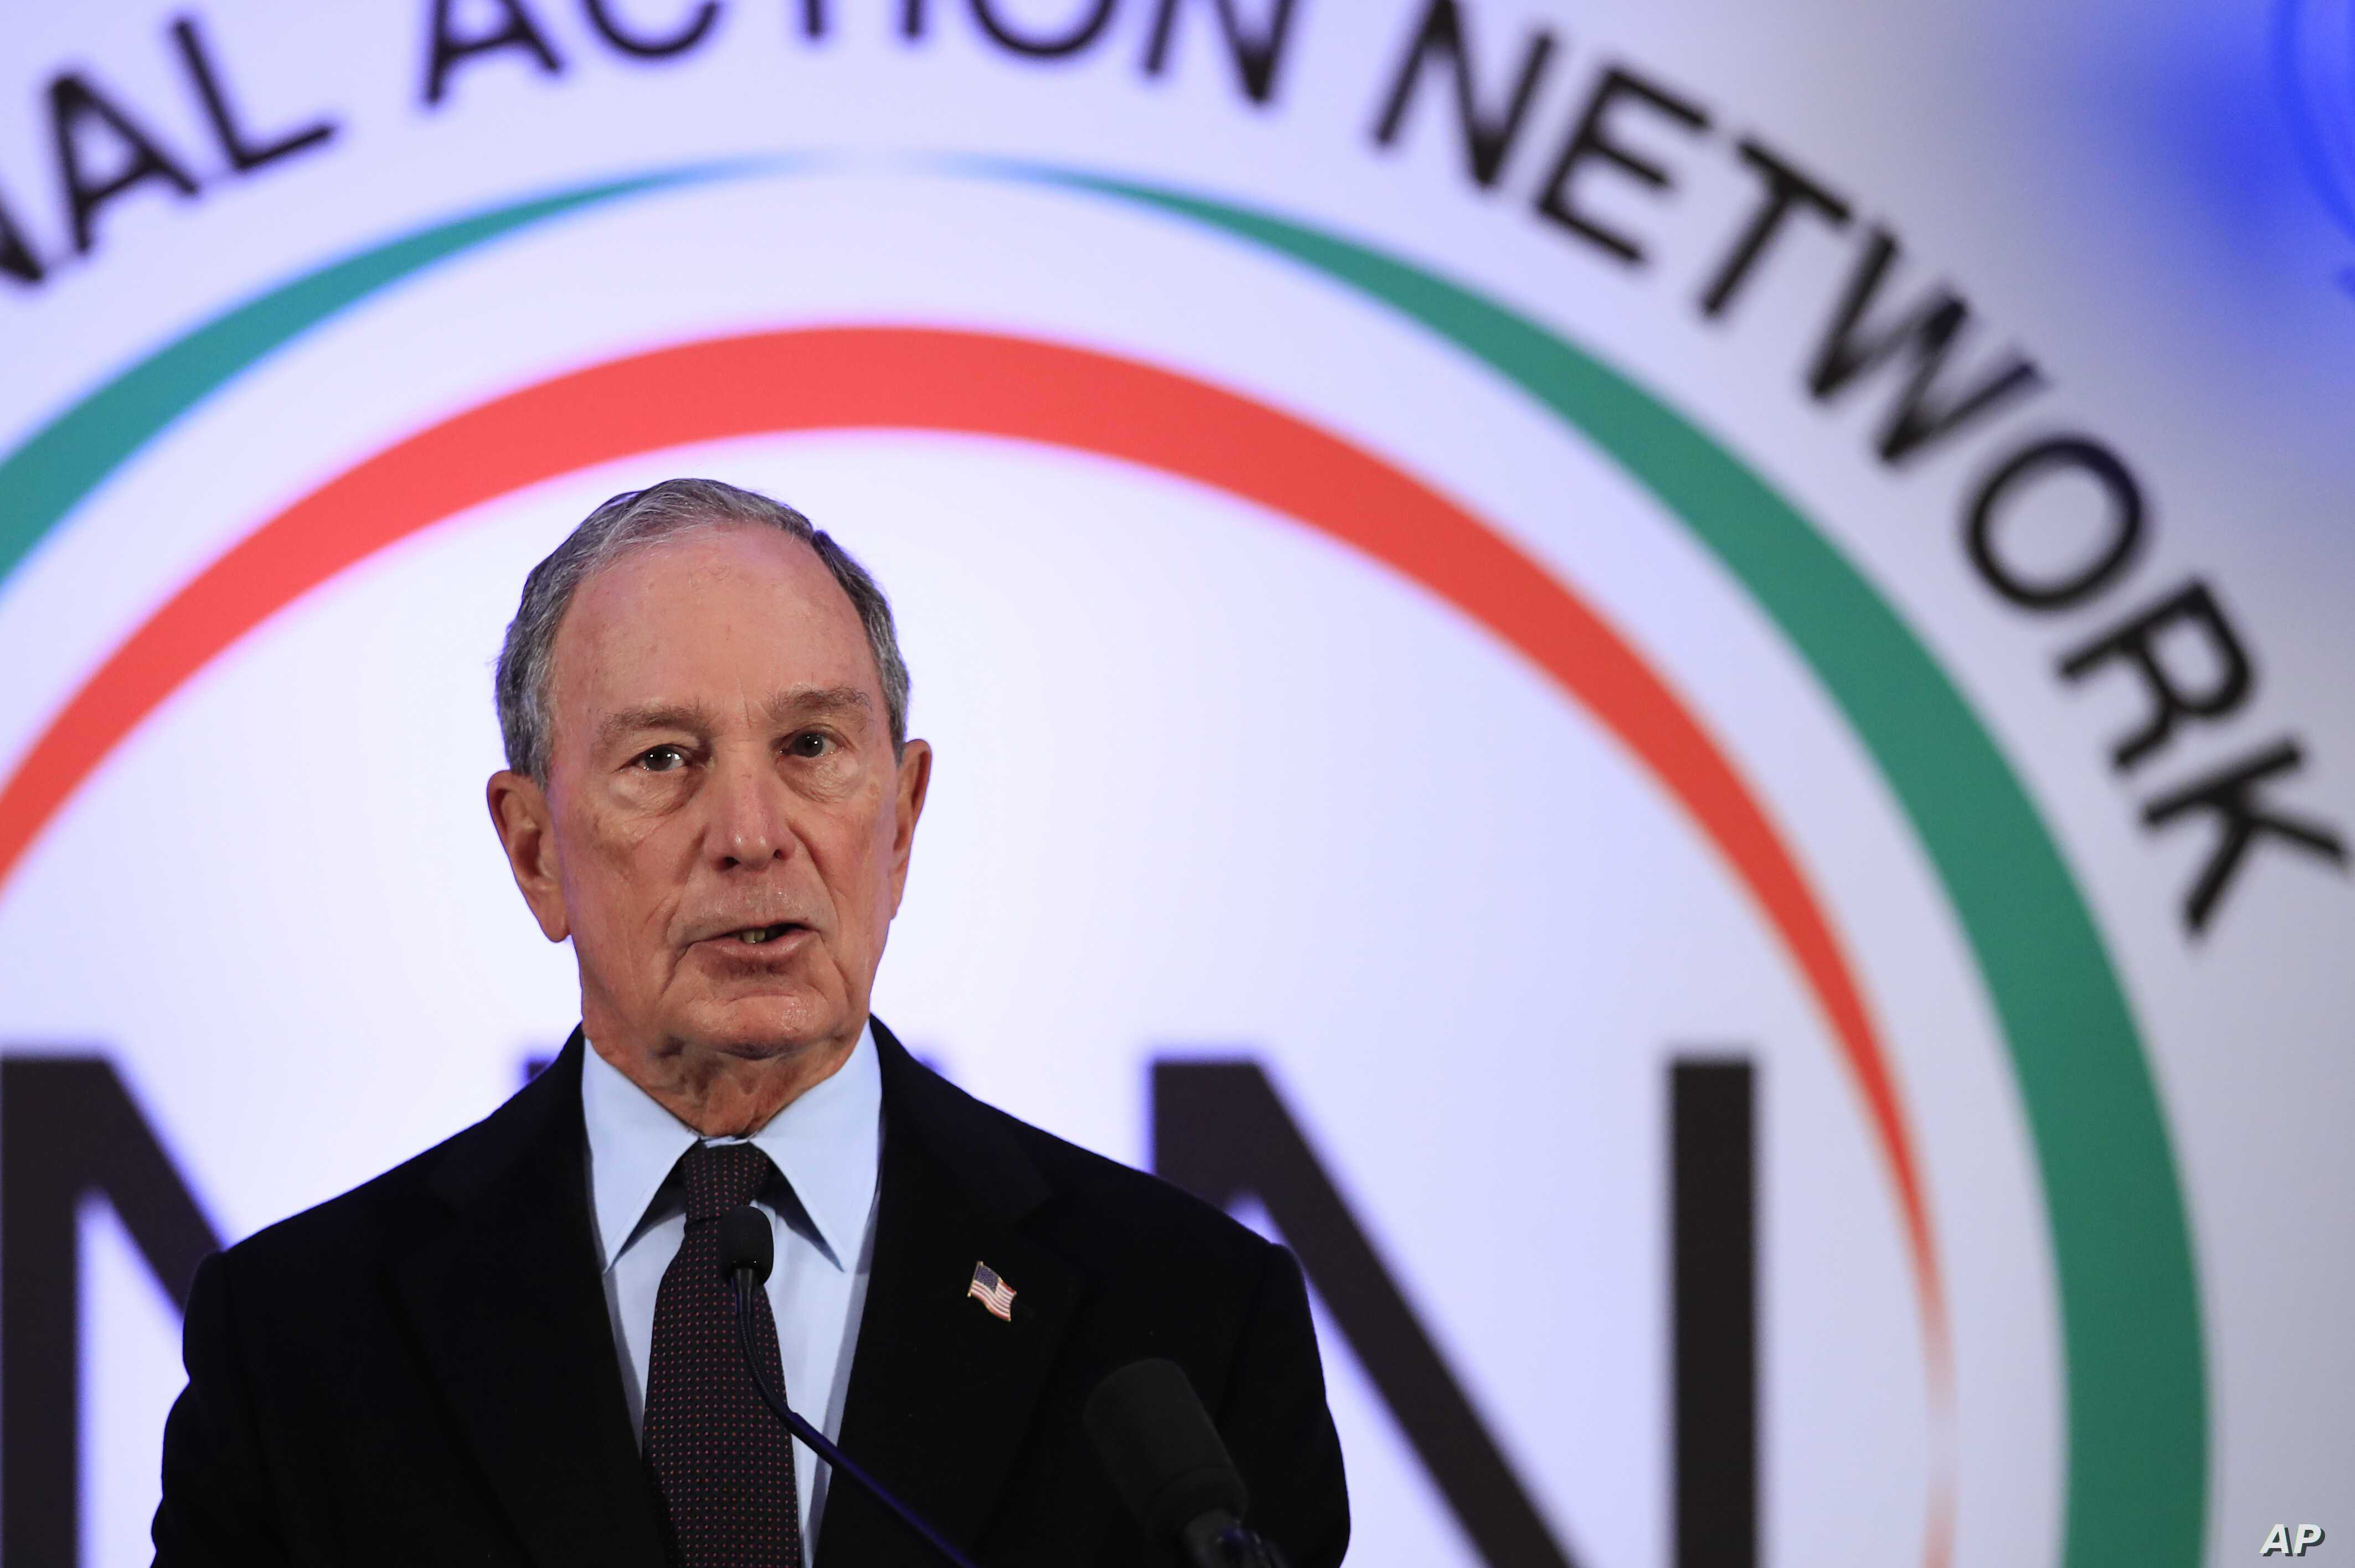 Former New York City Mayor Michael Bloomberg, speaks during a breakfast gathering commemorating the Martin Luther King Day in Washington, Jan. 21, 2019.